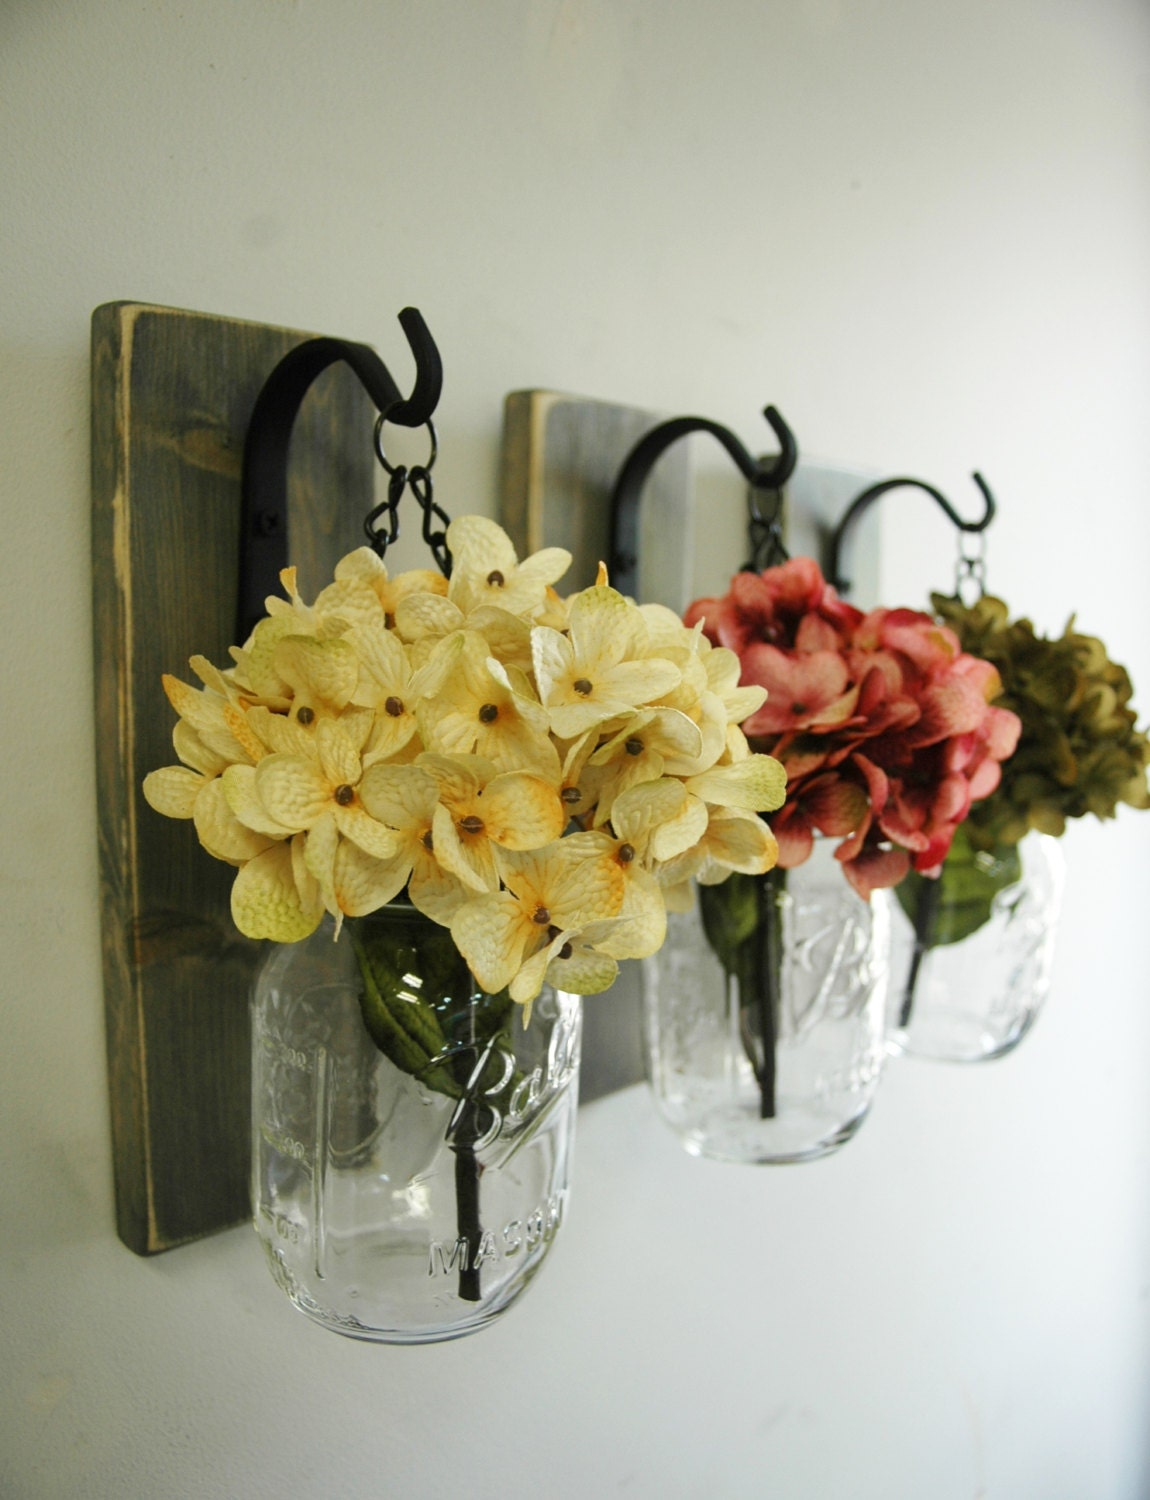 Individual Hanging Mason Jar Wall Decor Farmhouse style